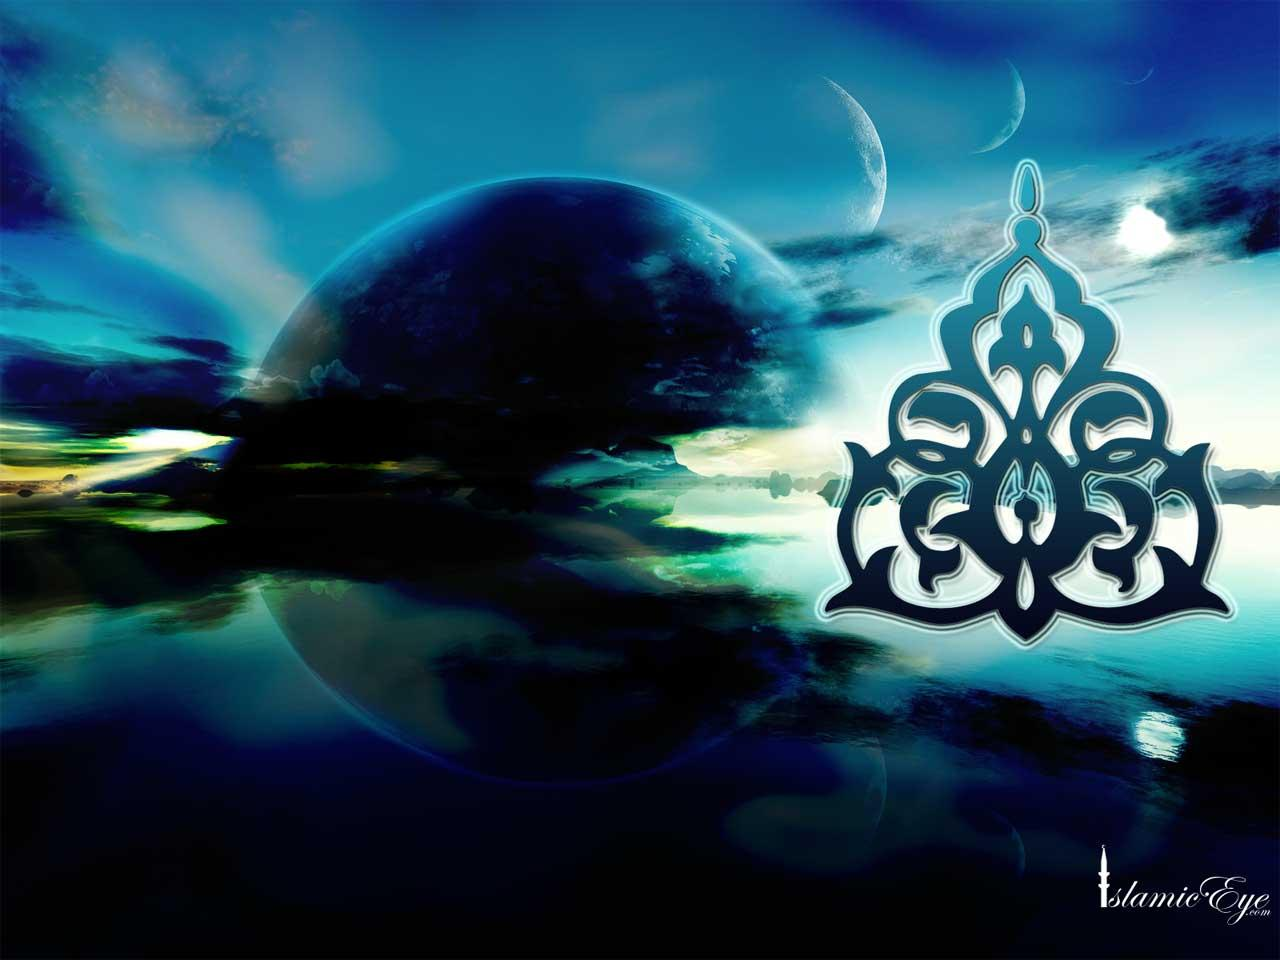 3d islamic hd wallpapers wallpaper202 for M wallpaper 3d